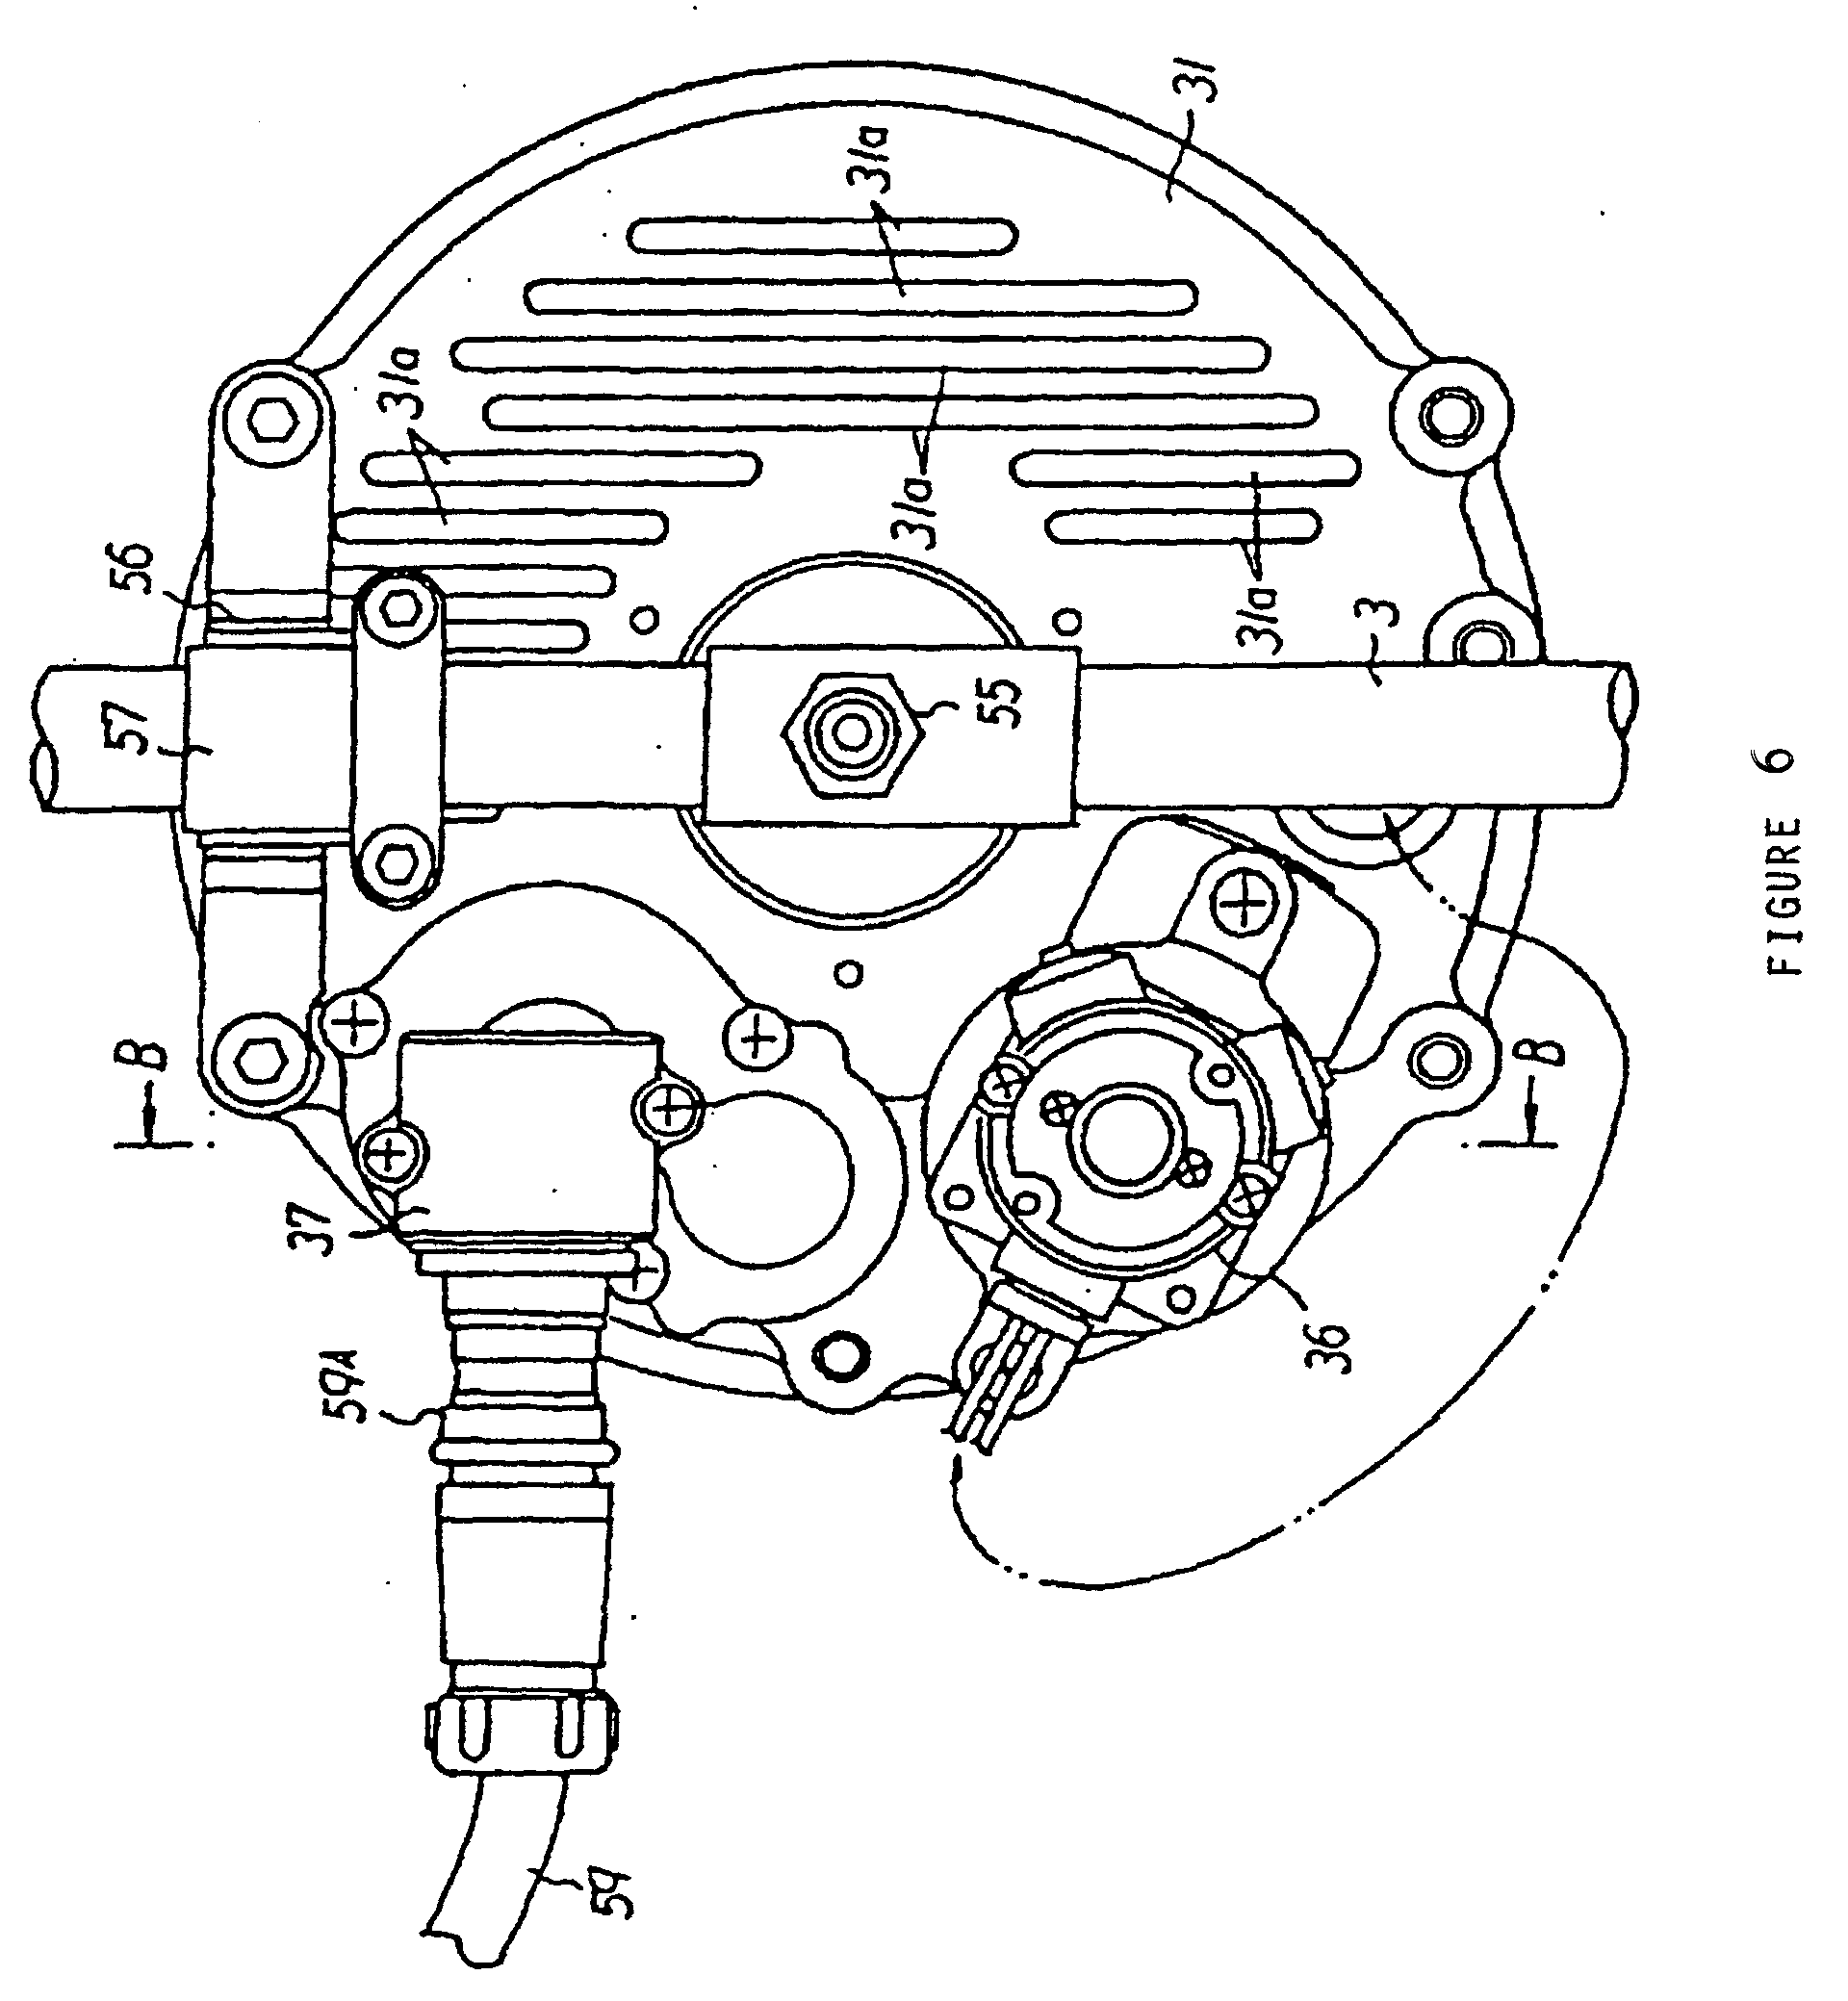 Yamaha G1 Wiring, Yamaha, Free Engine Image For User